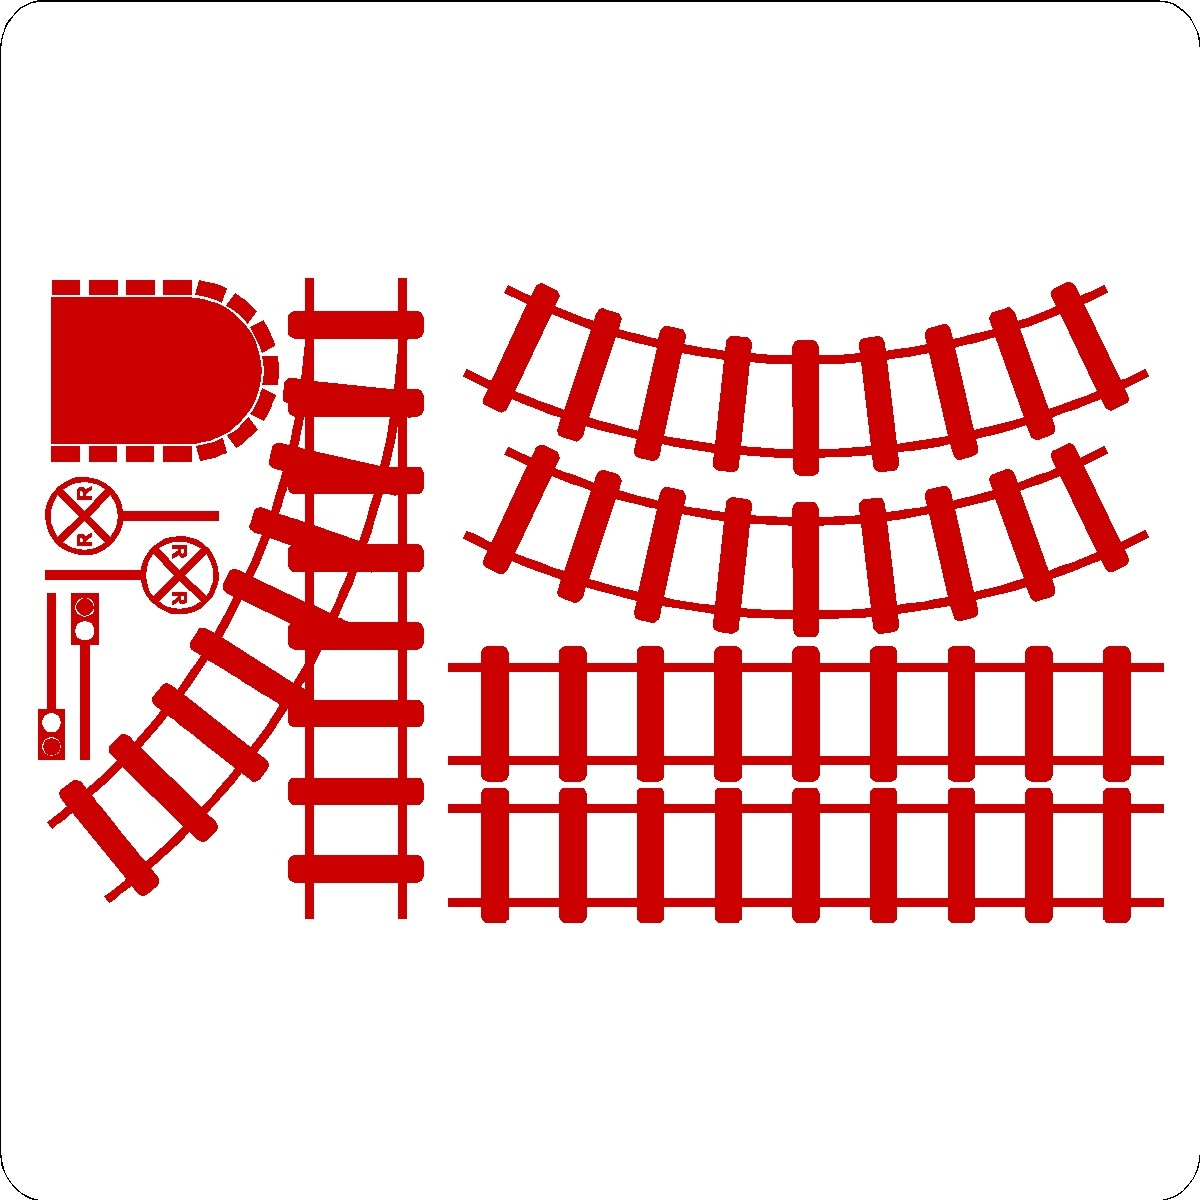 Train track wall decals